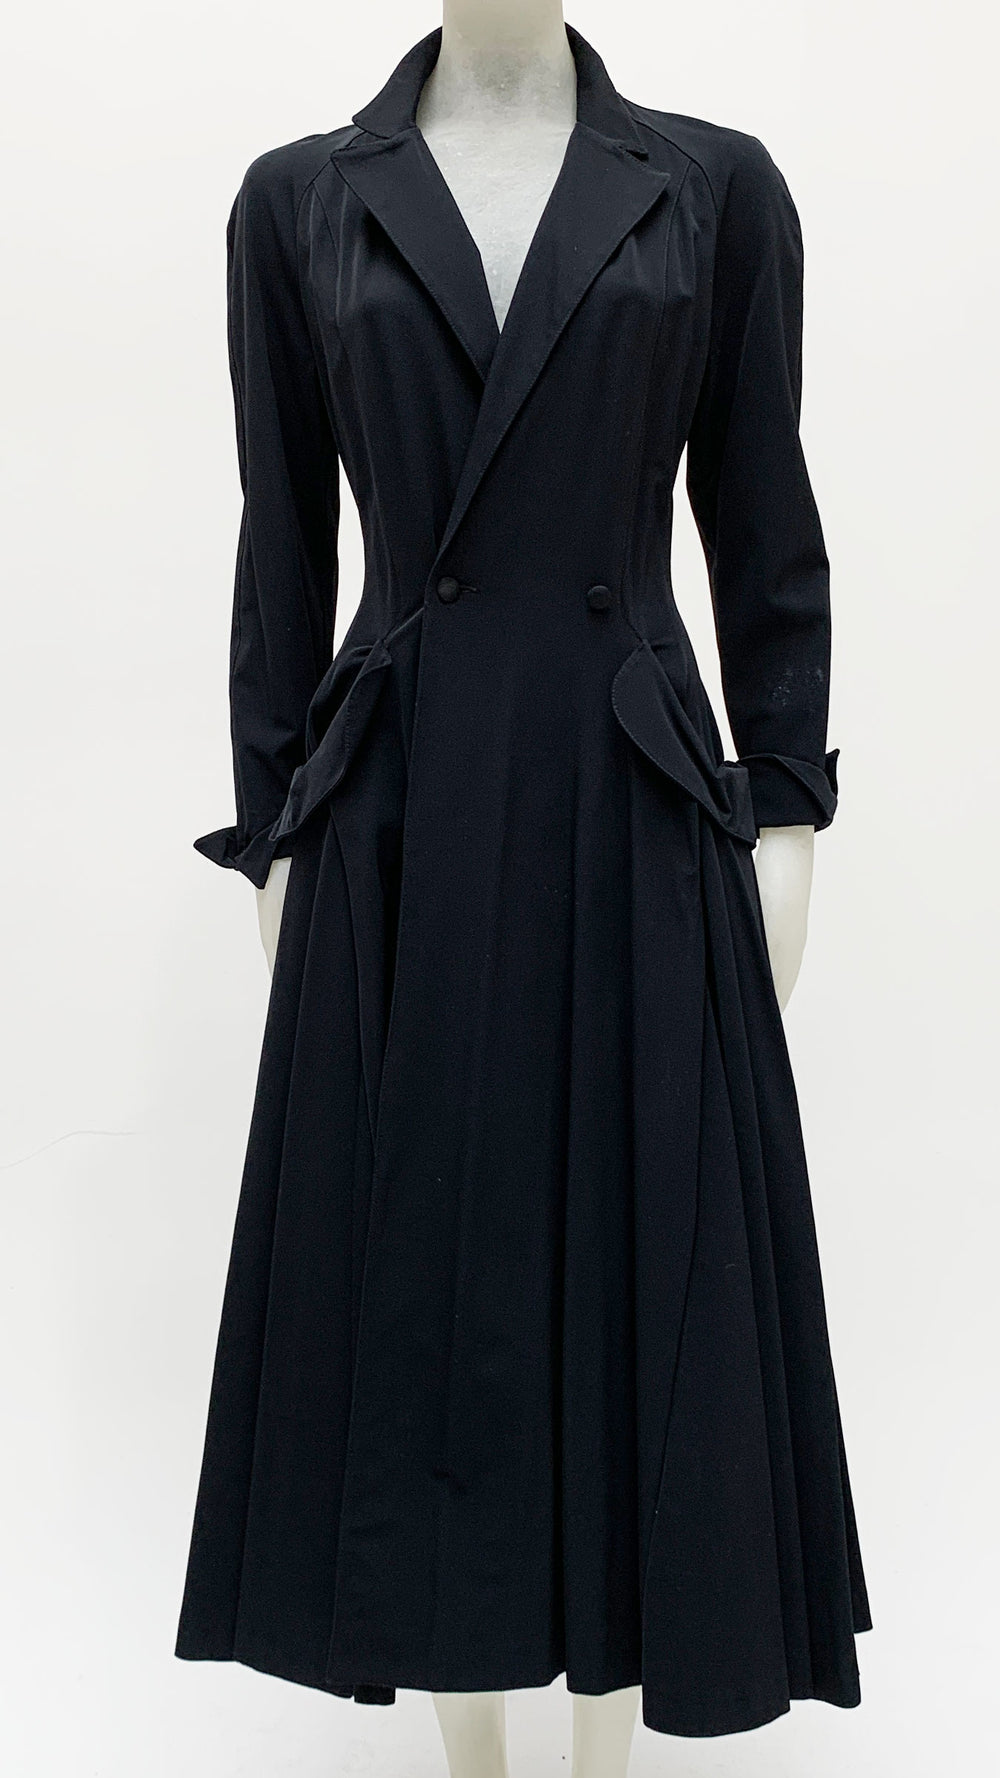 DOUBLE BREASTED COAT DRESS - 1